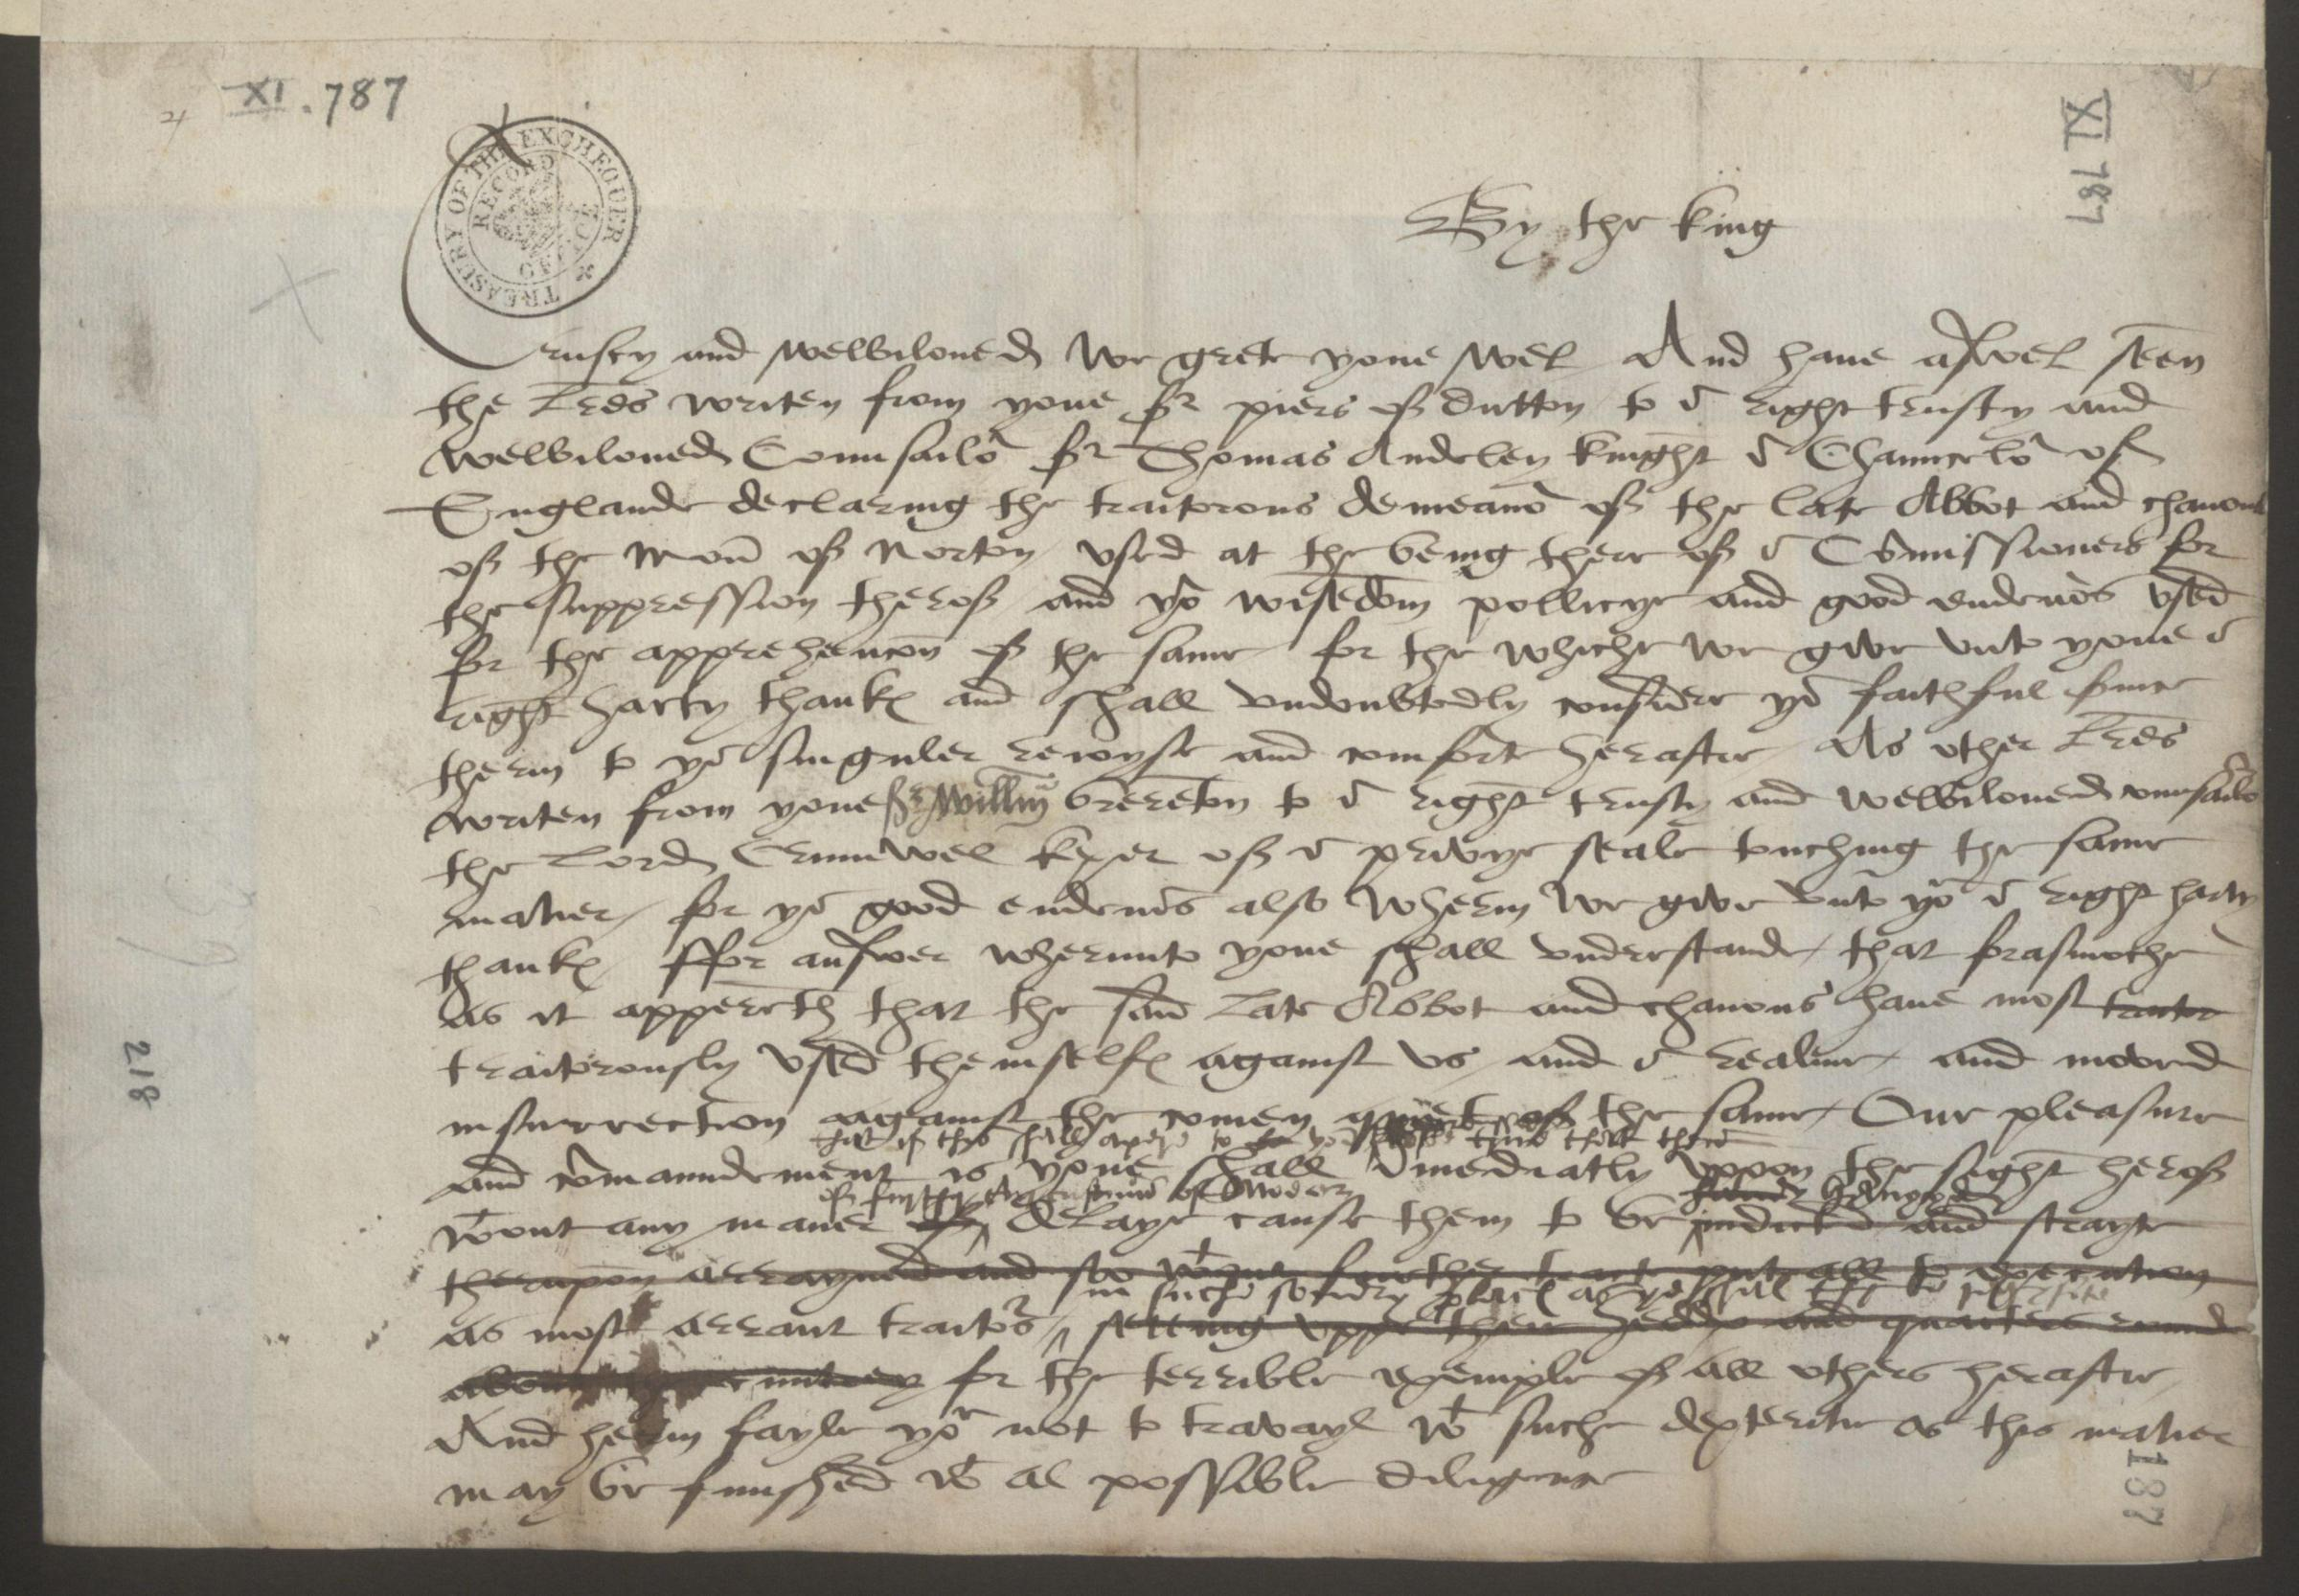 A 16th century draft letter demonstrating King Henry VIII's infamous temper goes on display at Norton Priory from May 5